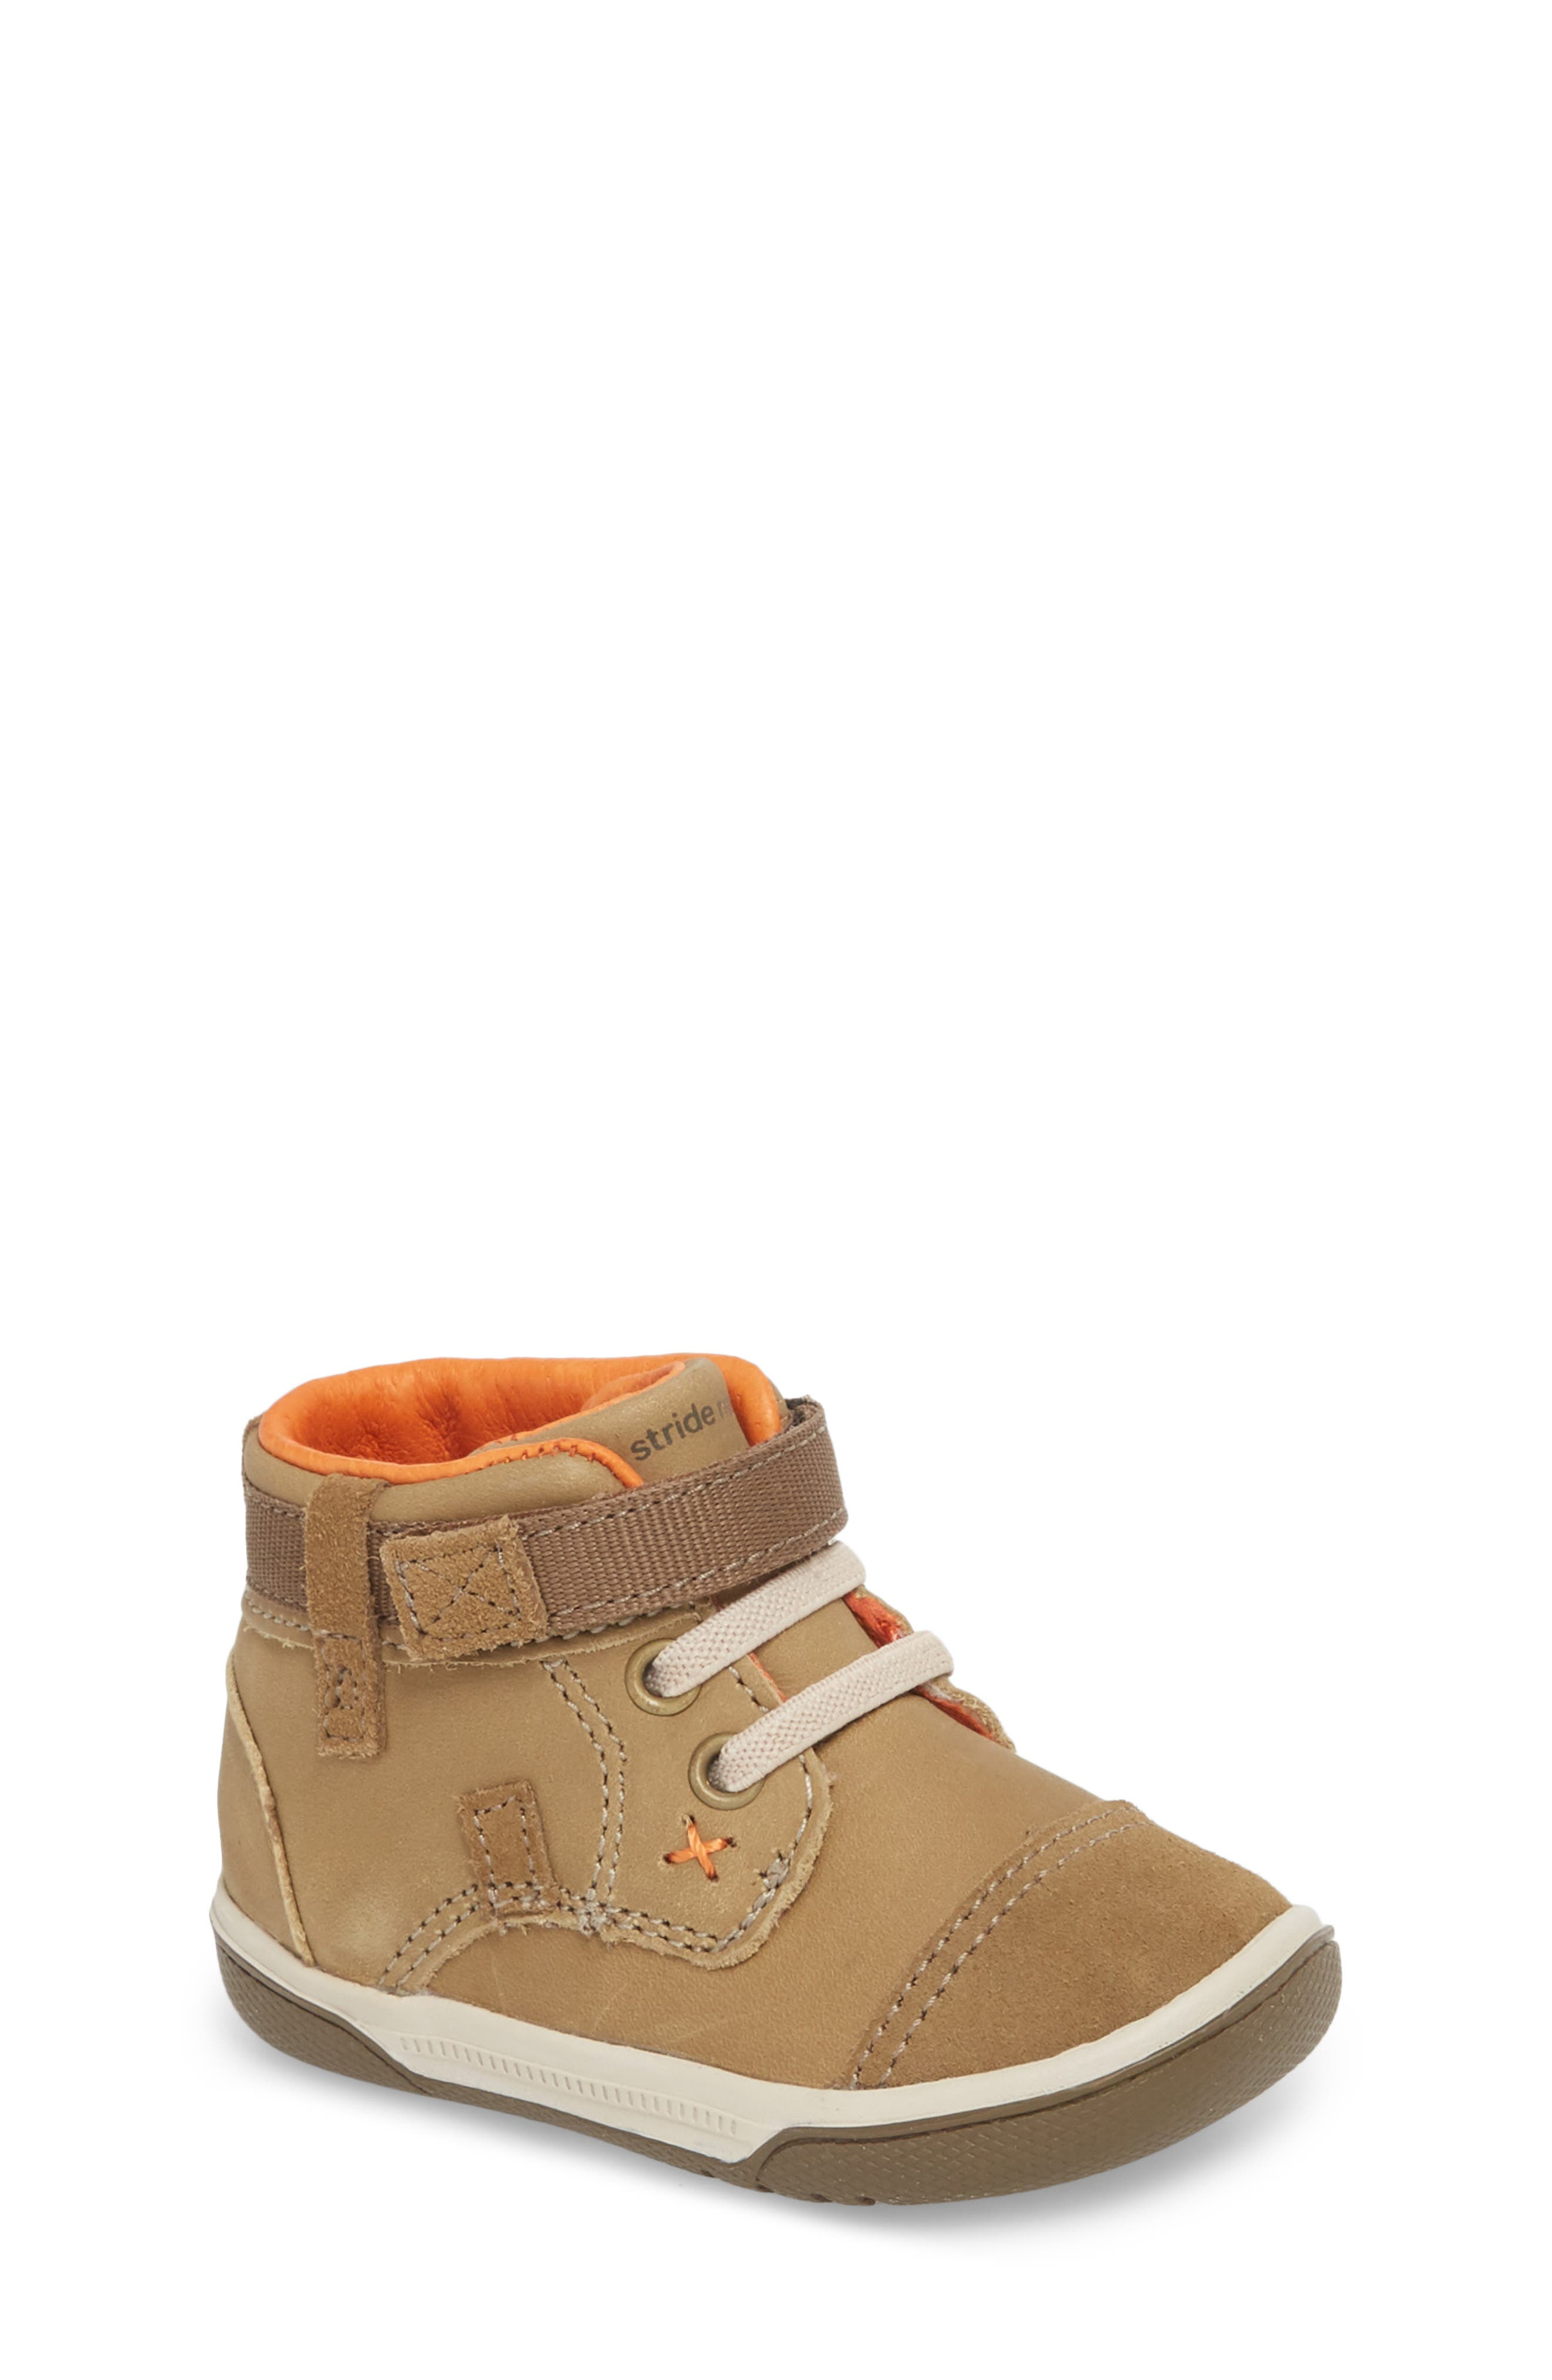 Gus Crib Bootie,                         Main,                         color, BROWN